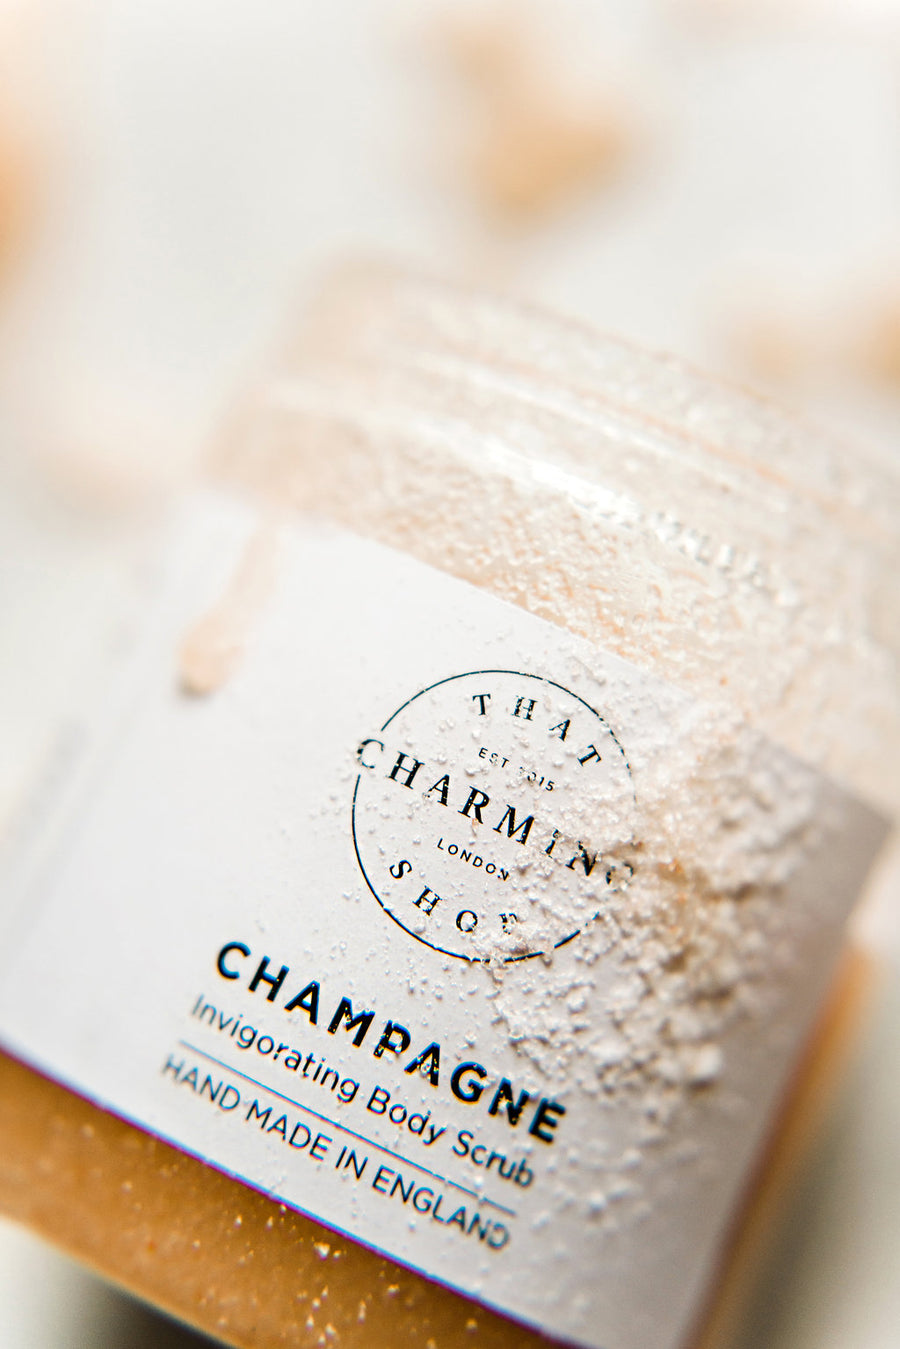 Champagne Body Scrub - That Charming Shop - Wedding Body Scrub